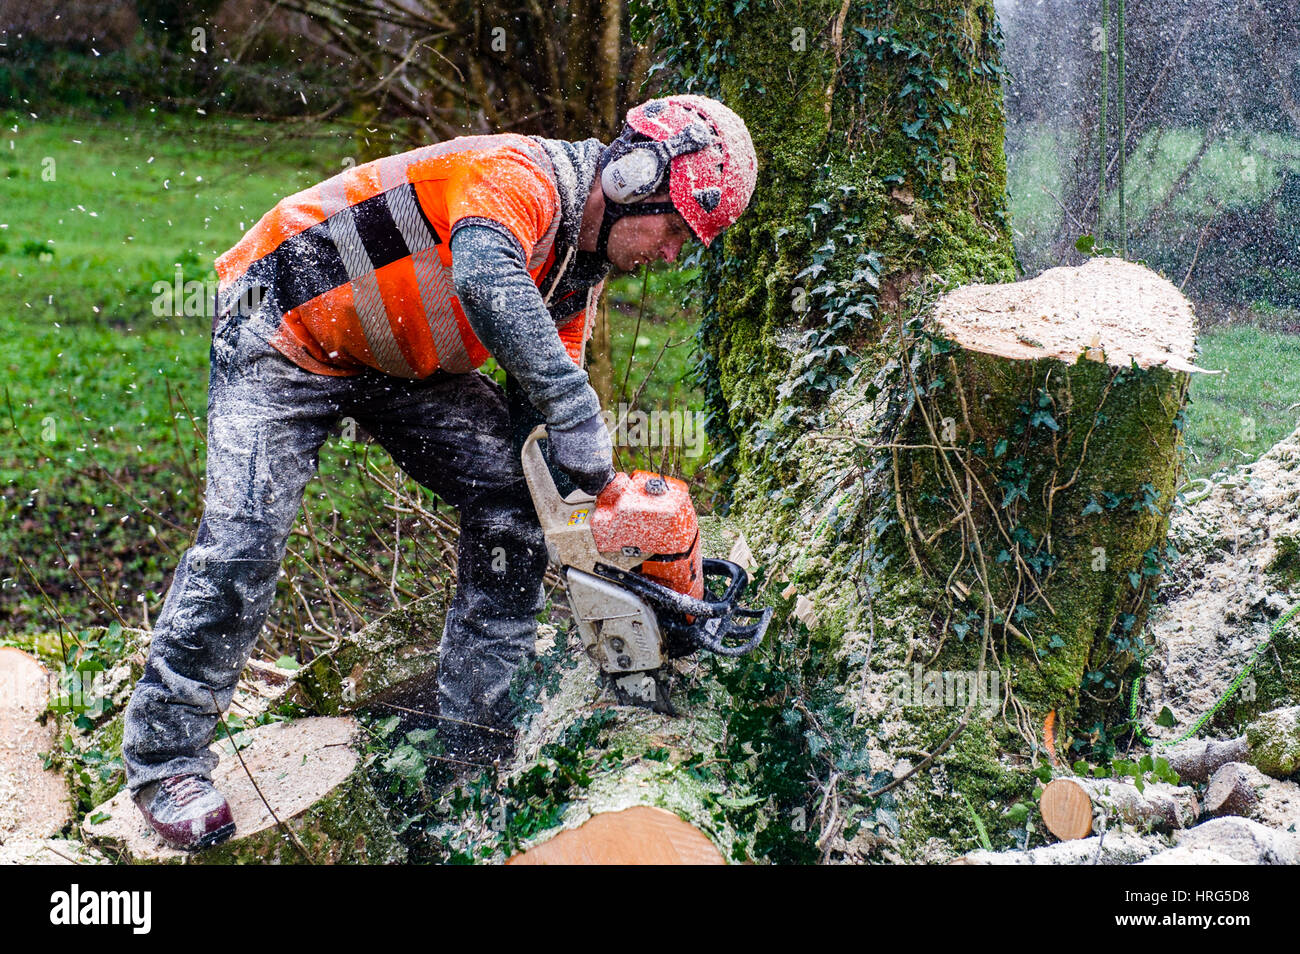 professional-tree-surgeon-cuts-down-a-rotten-tree-in-a-domestic-garden-HRG5D8.jpg